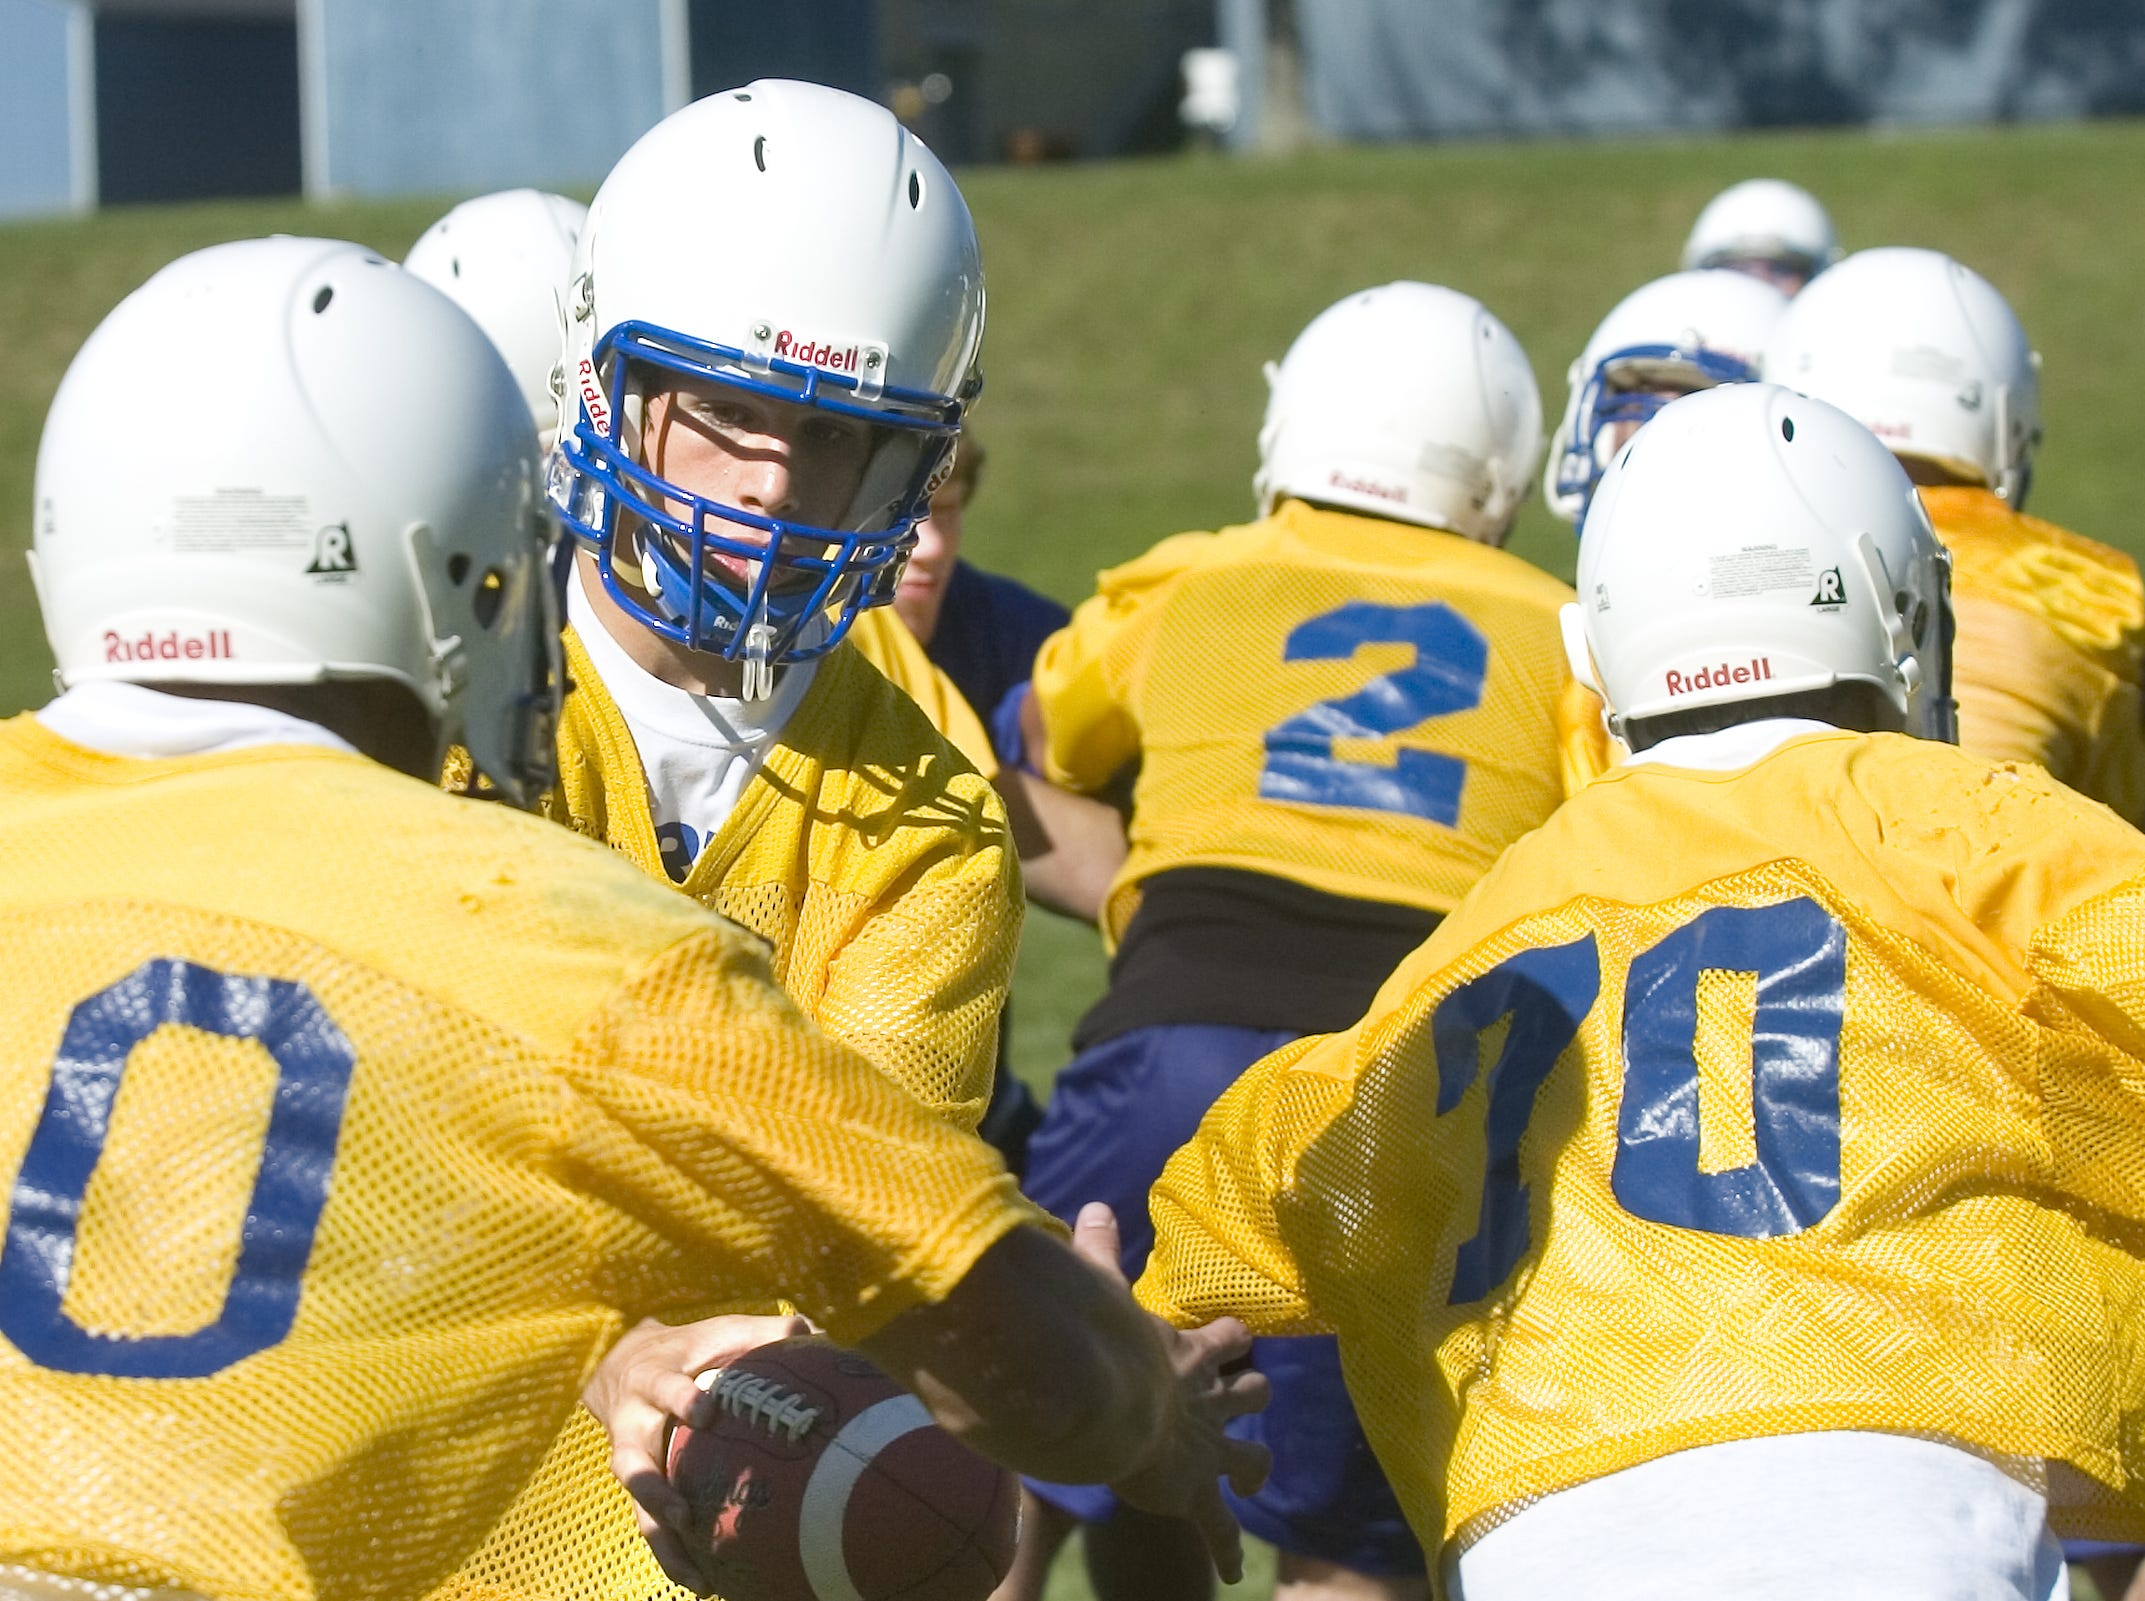 Maine-Endwell High School quarterback Joe Battaglini hands off to a running back during practice in 2006.